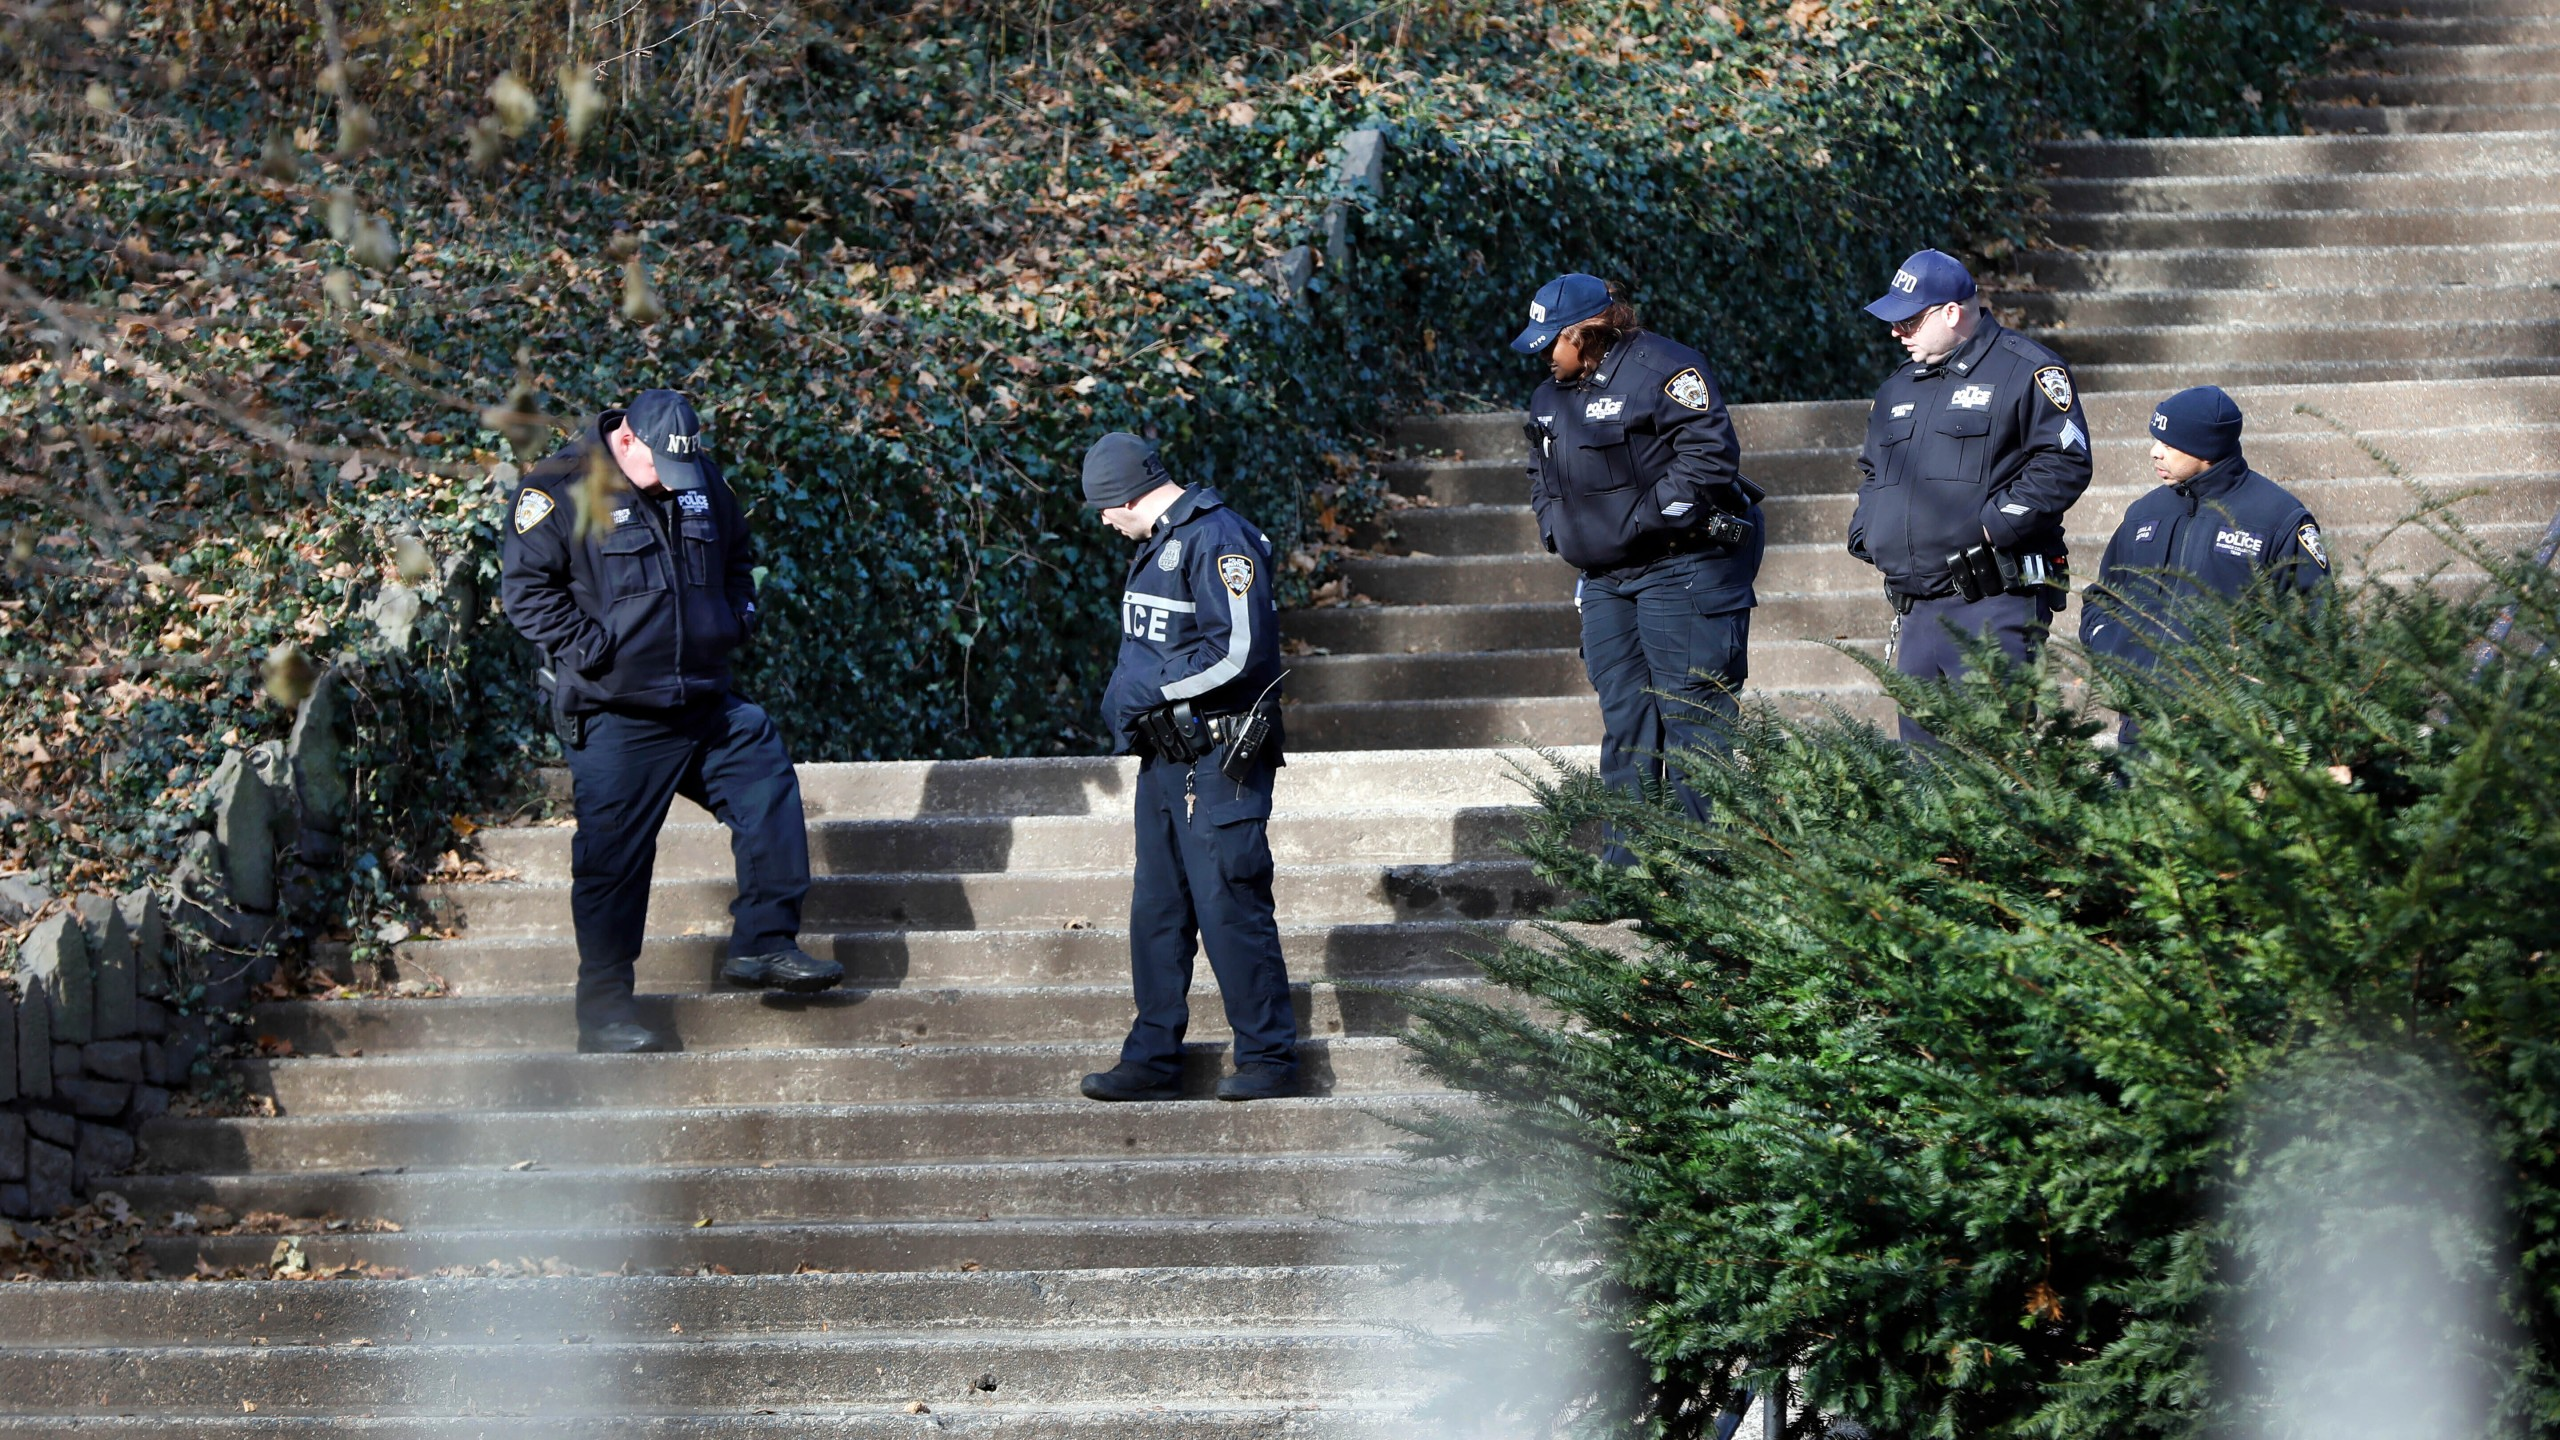 Law enforcement officers search Morningside Park along Manhattan's Upper West Side, Thursday, Dec. 12, 2019, in New York. An 18-year-old Barnard College freshman, identified as Tessa Majors, has been fatally stabbed during an armed robbery in the park, sending shock waves through the college and wider Columbia University community. (AP Photo/Richard Drew)